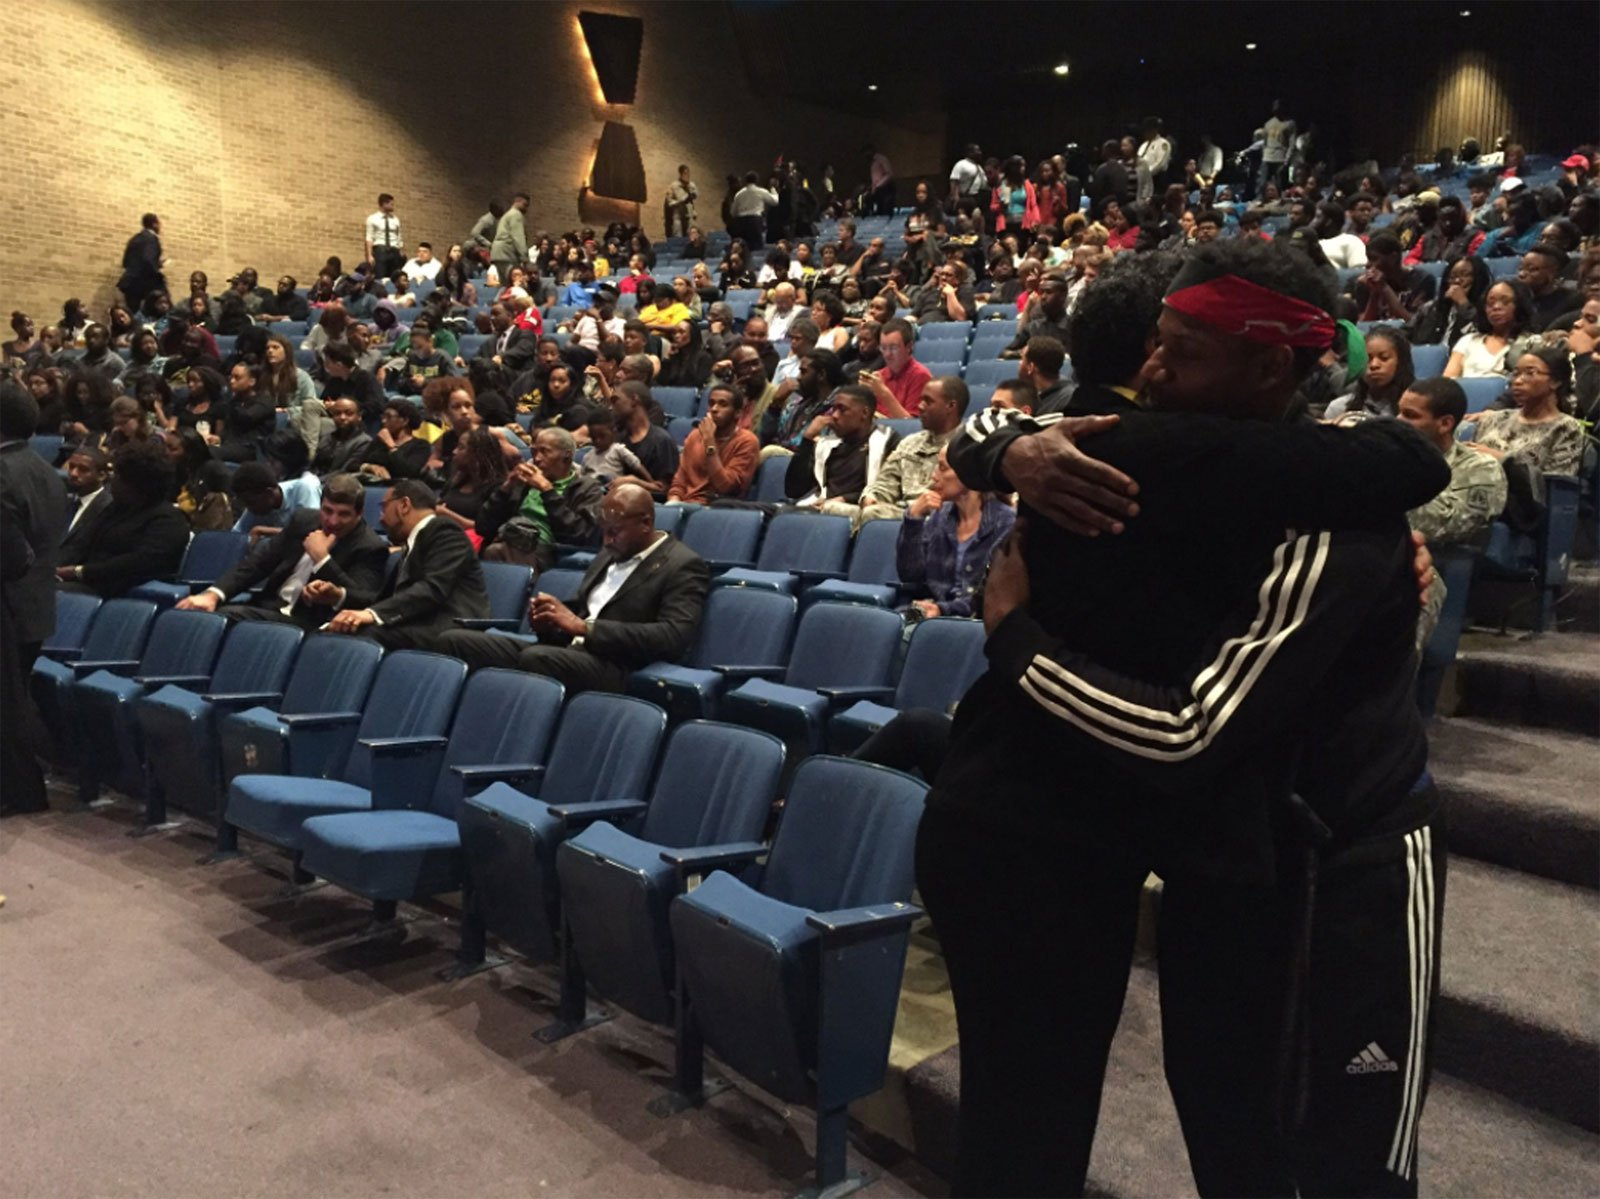 At the Monday night vigil for Richard Collins III, who was just about to graduate from Bowie State University. (WTOP/Michelle Basch)